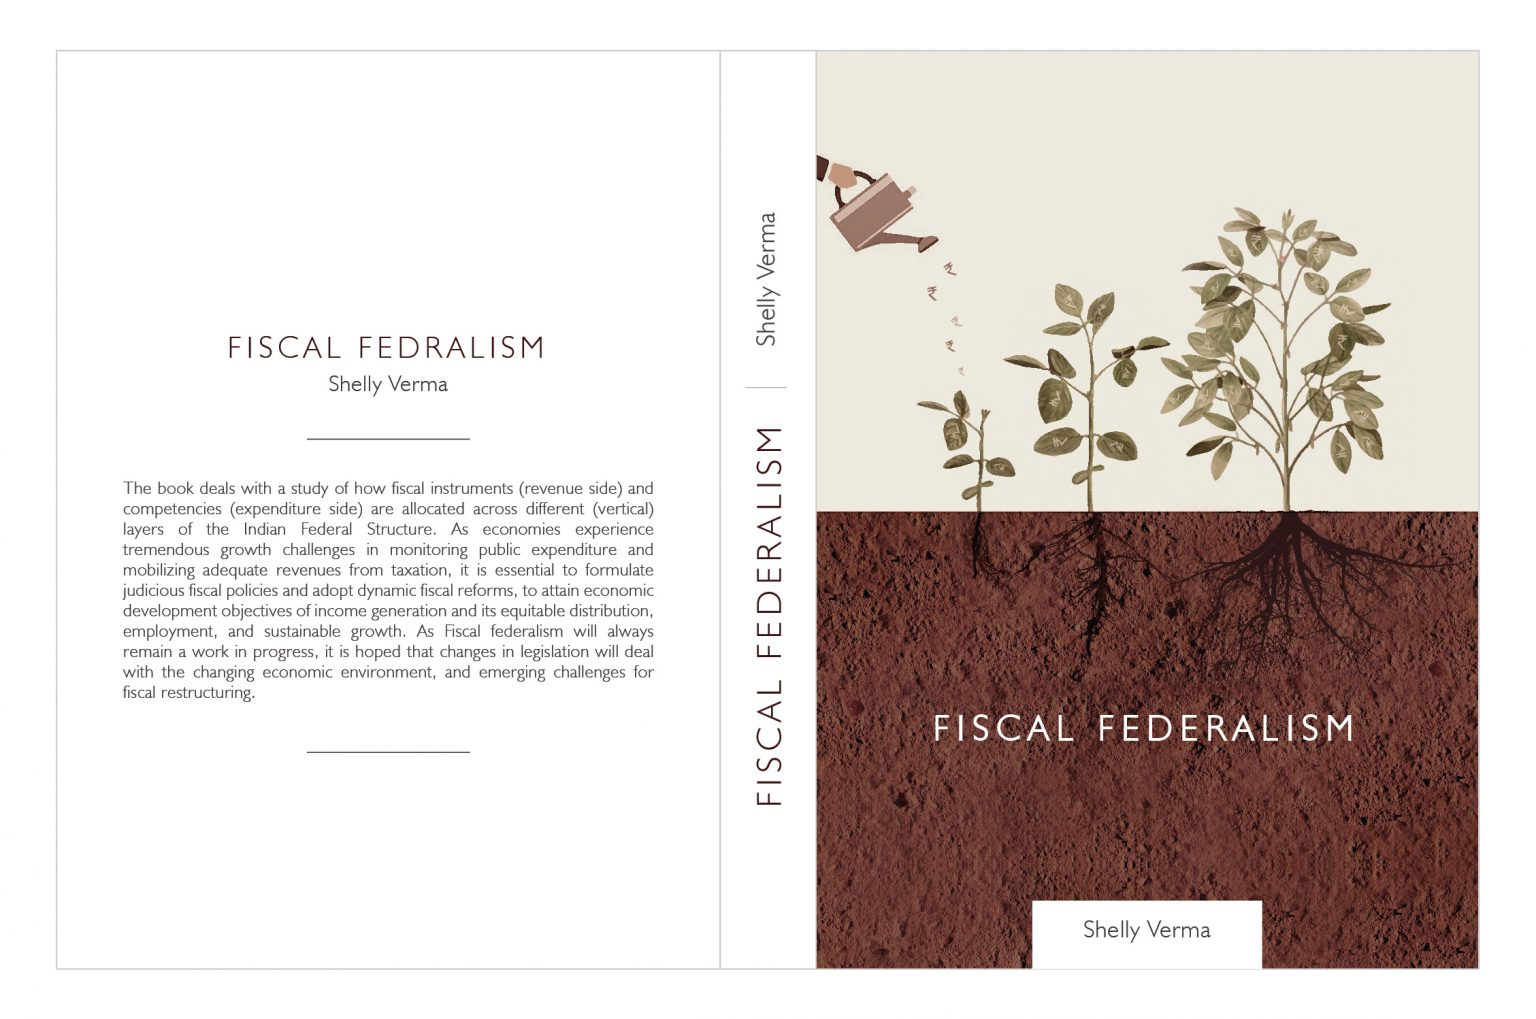 Fiscal_fedralism_book_cover_revised-02